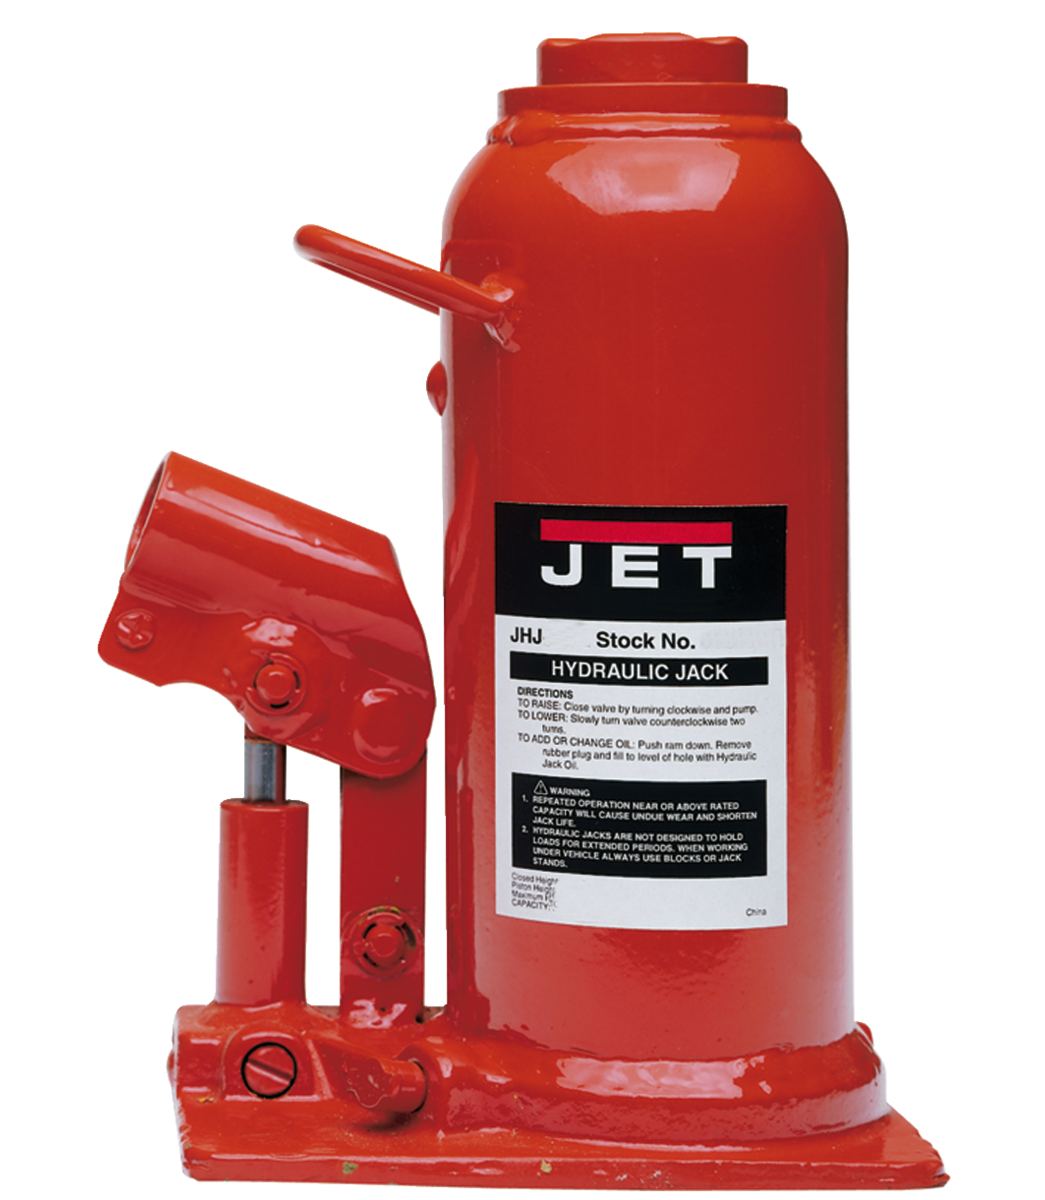 JHJ-17-1/2, 17-1/2-Ton Hydraulic Bottle Jack